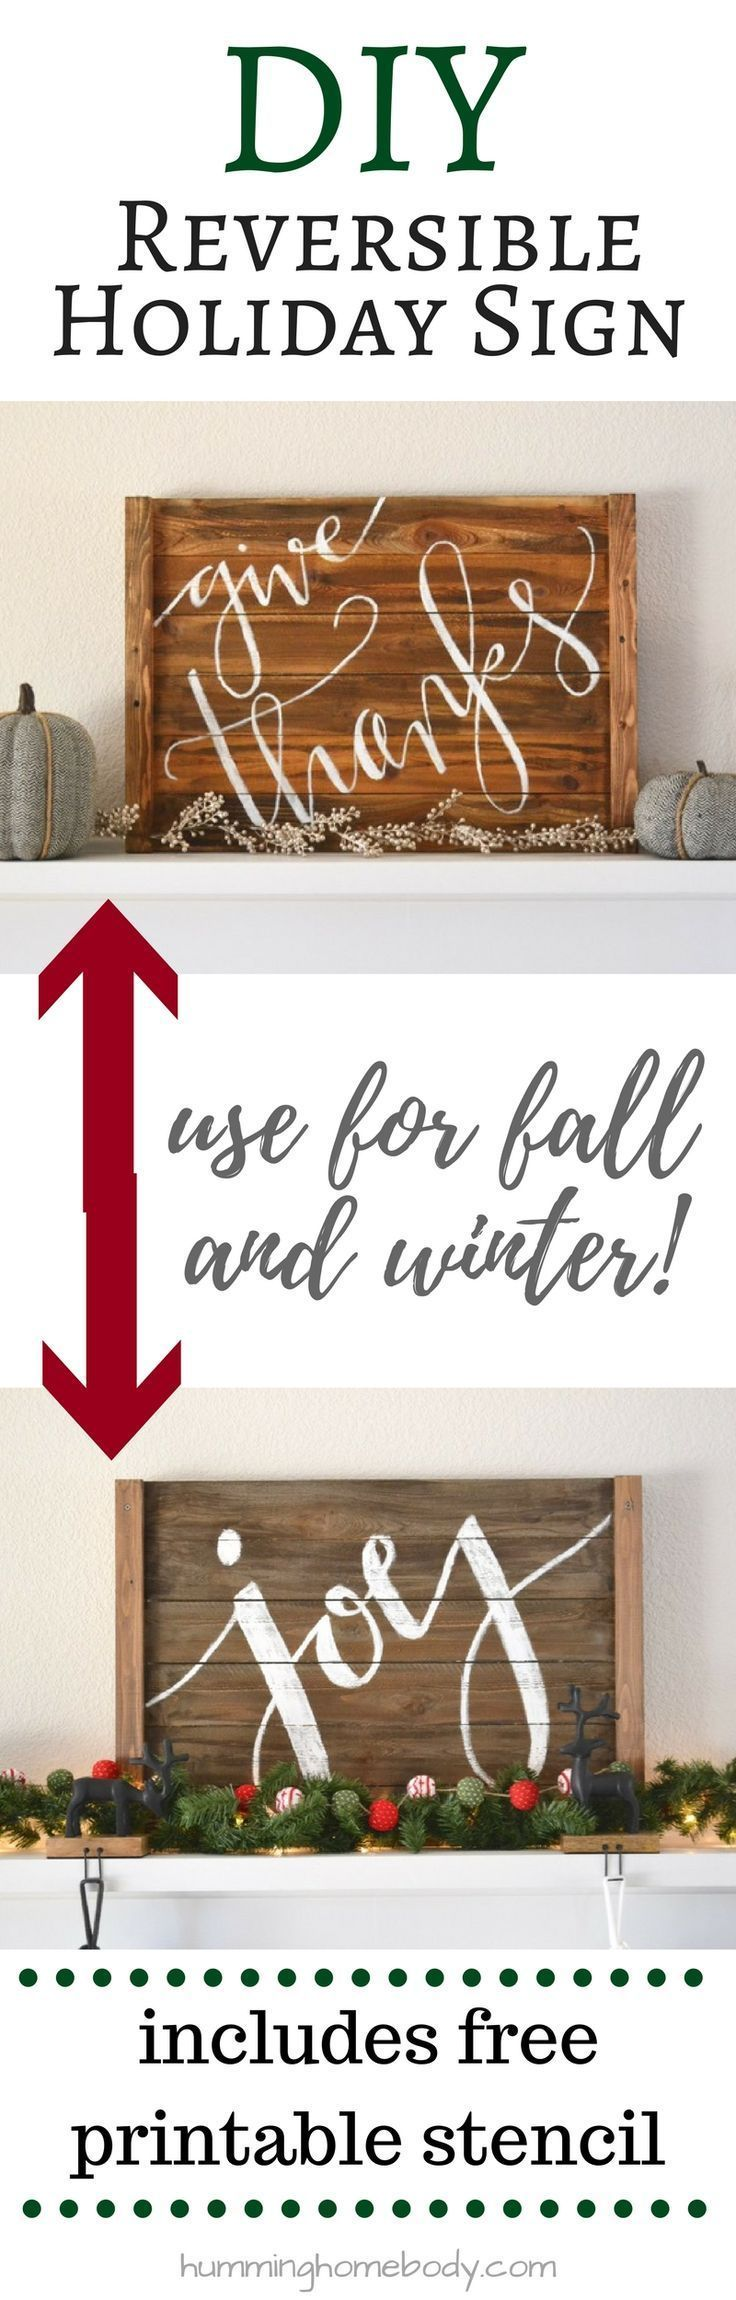 25 unique wall stencil quotes ideas on pinterest pallet wood diy this rustic wood holiday sign for your wall or mantel it is reversible so amipublicfo Images